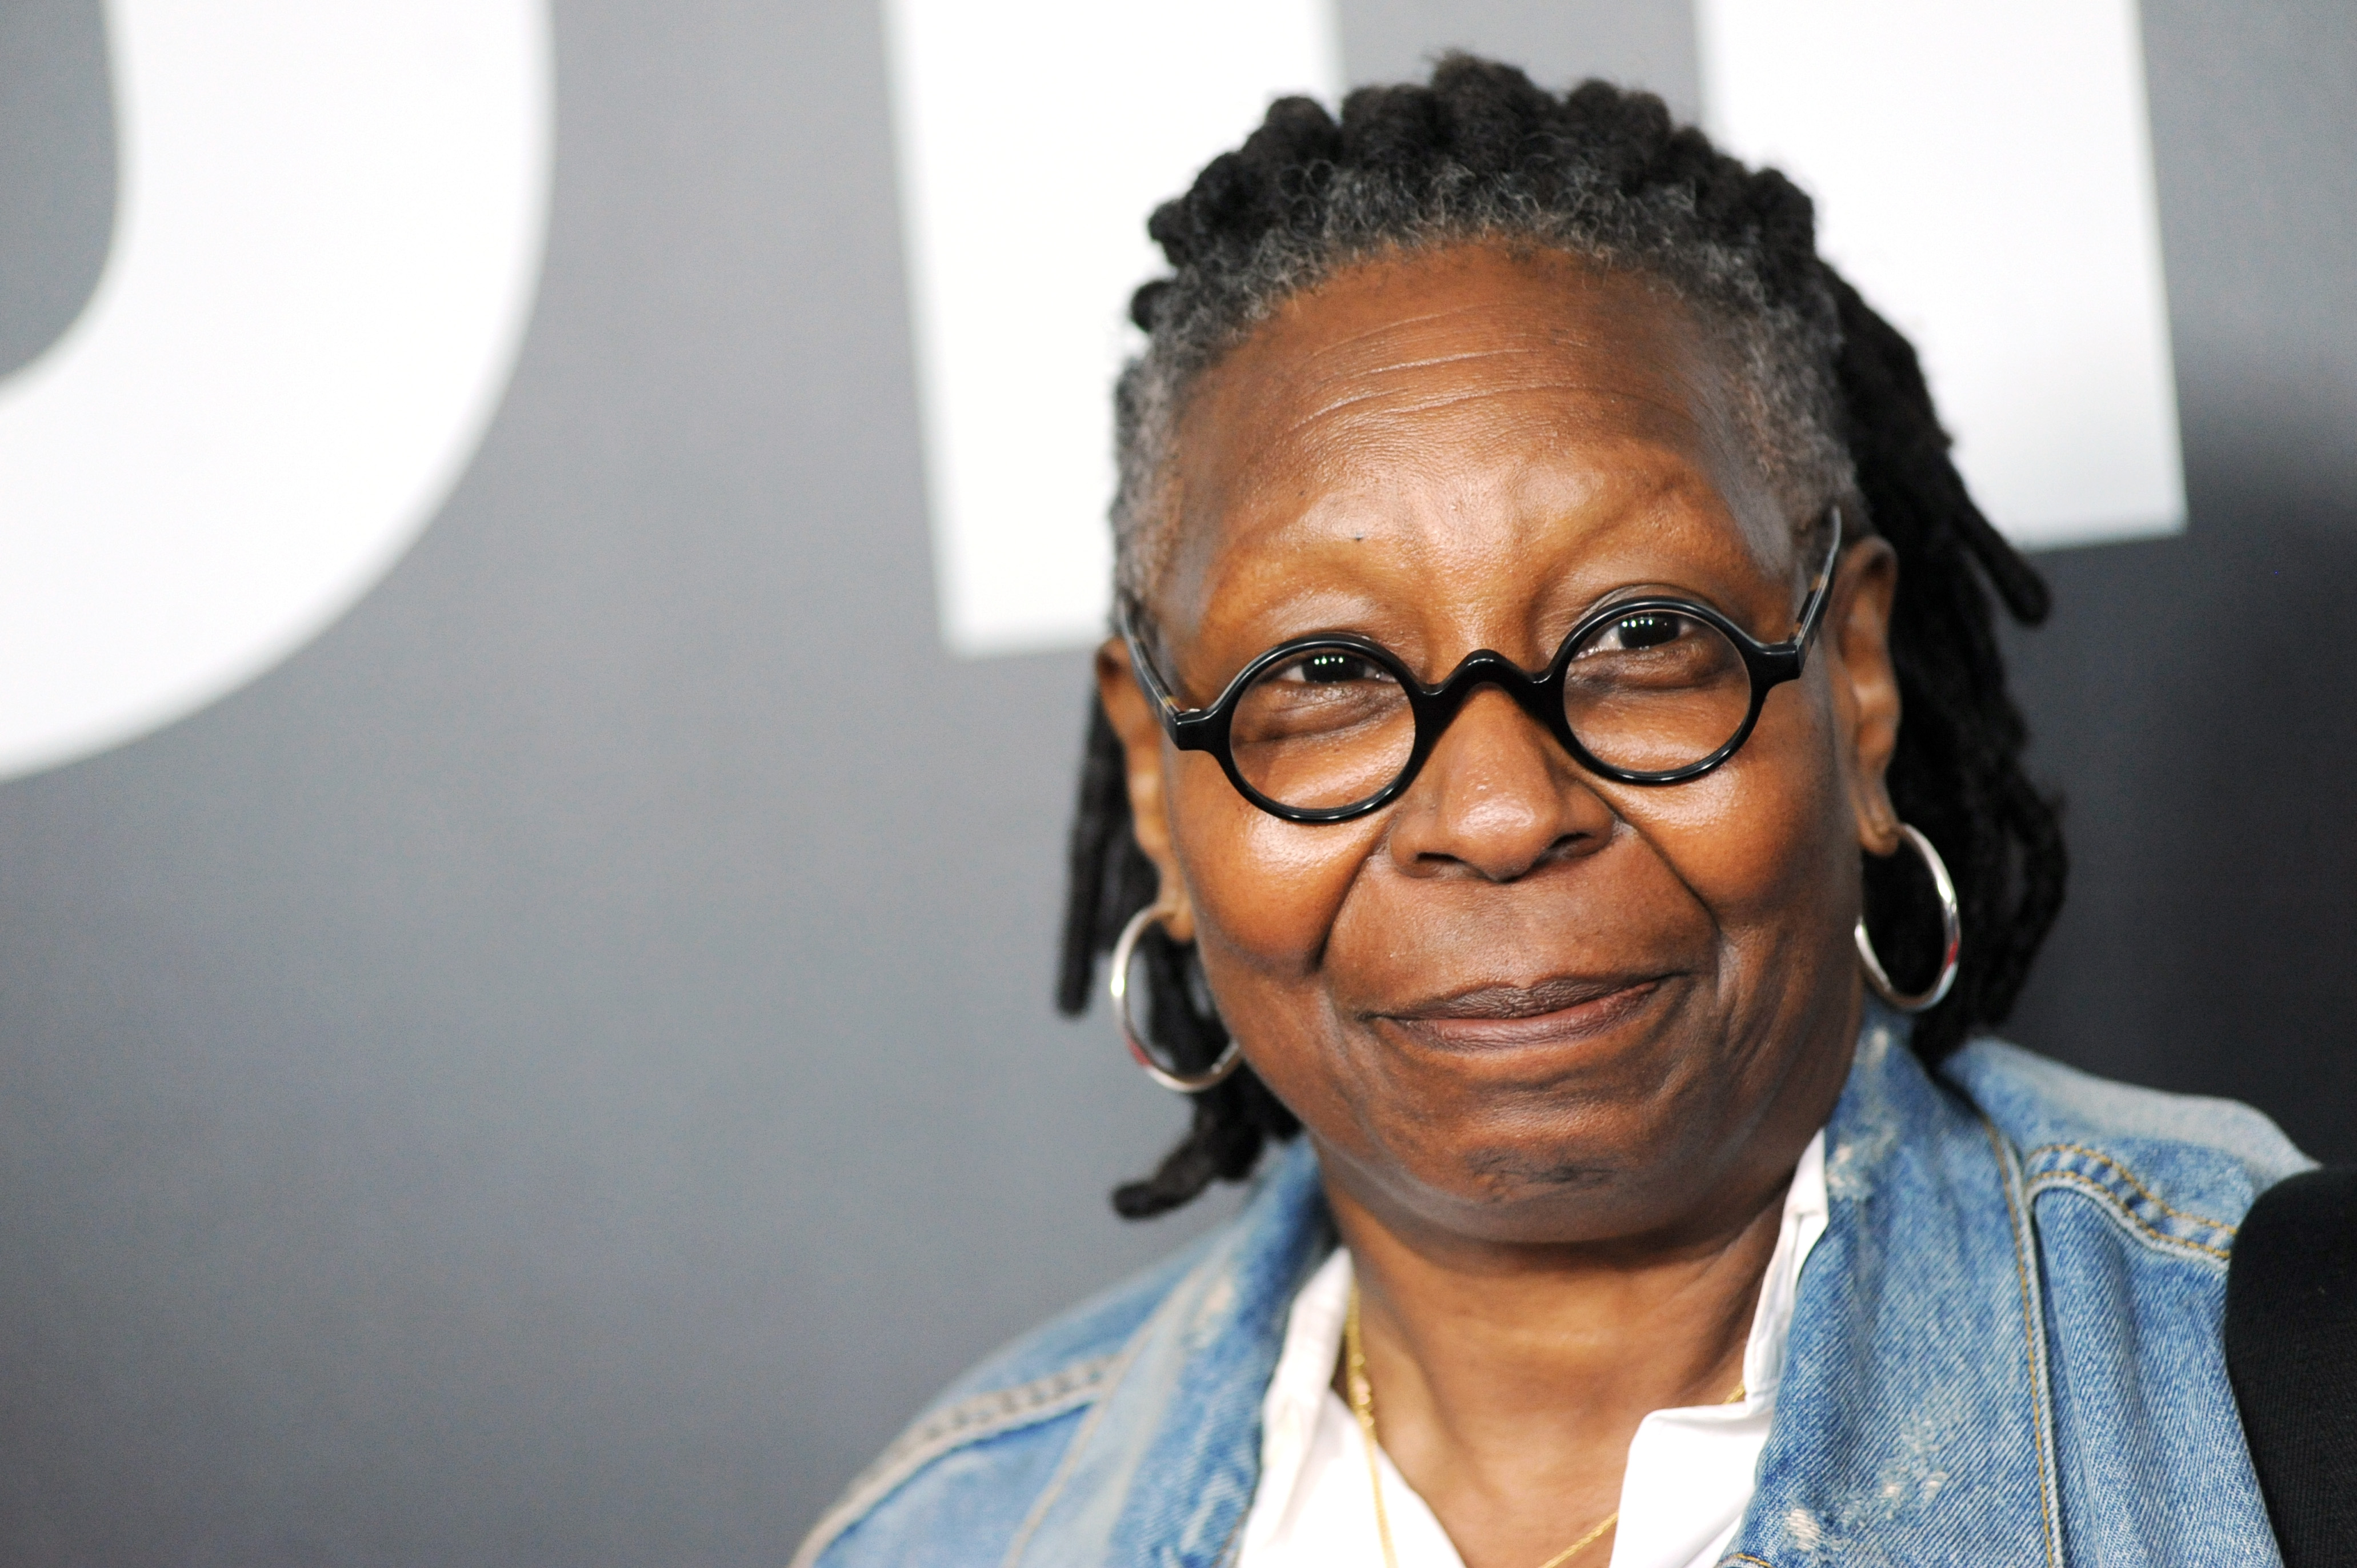 Whoopi Goldberg attends Netflix's 'Quincy' New York Special Screening on September 12, 2018, in New York City. (Getty Images)